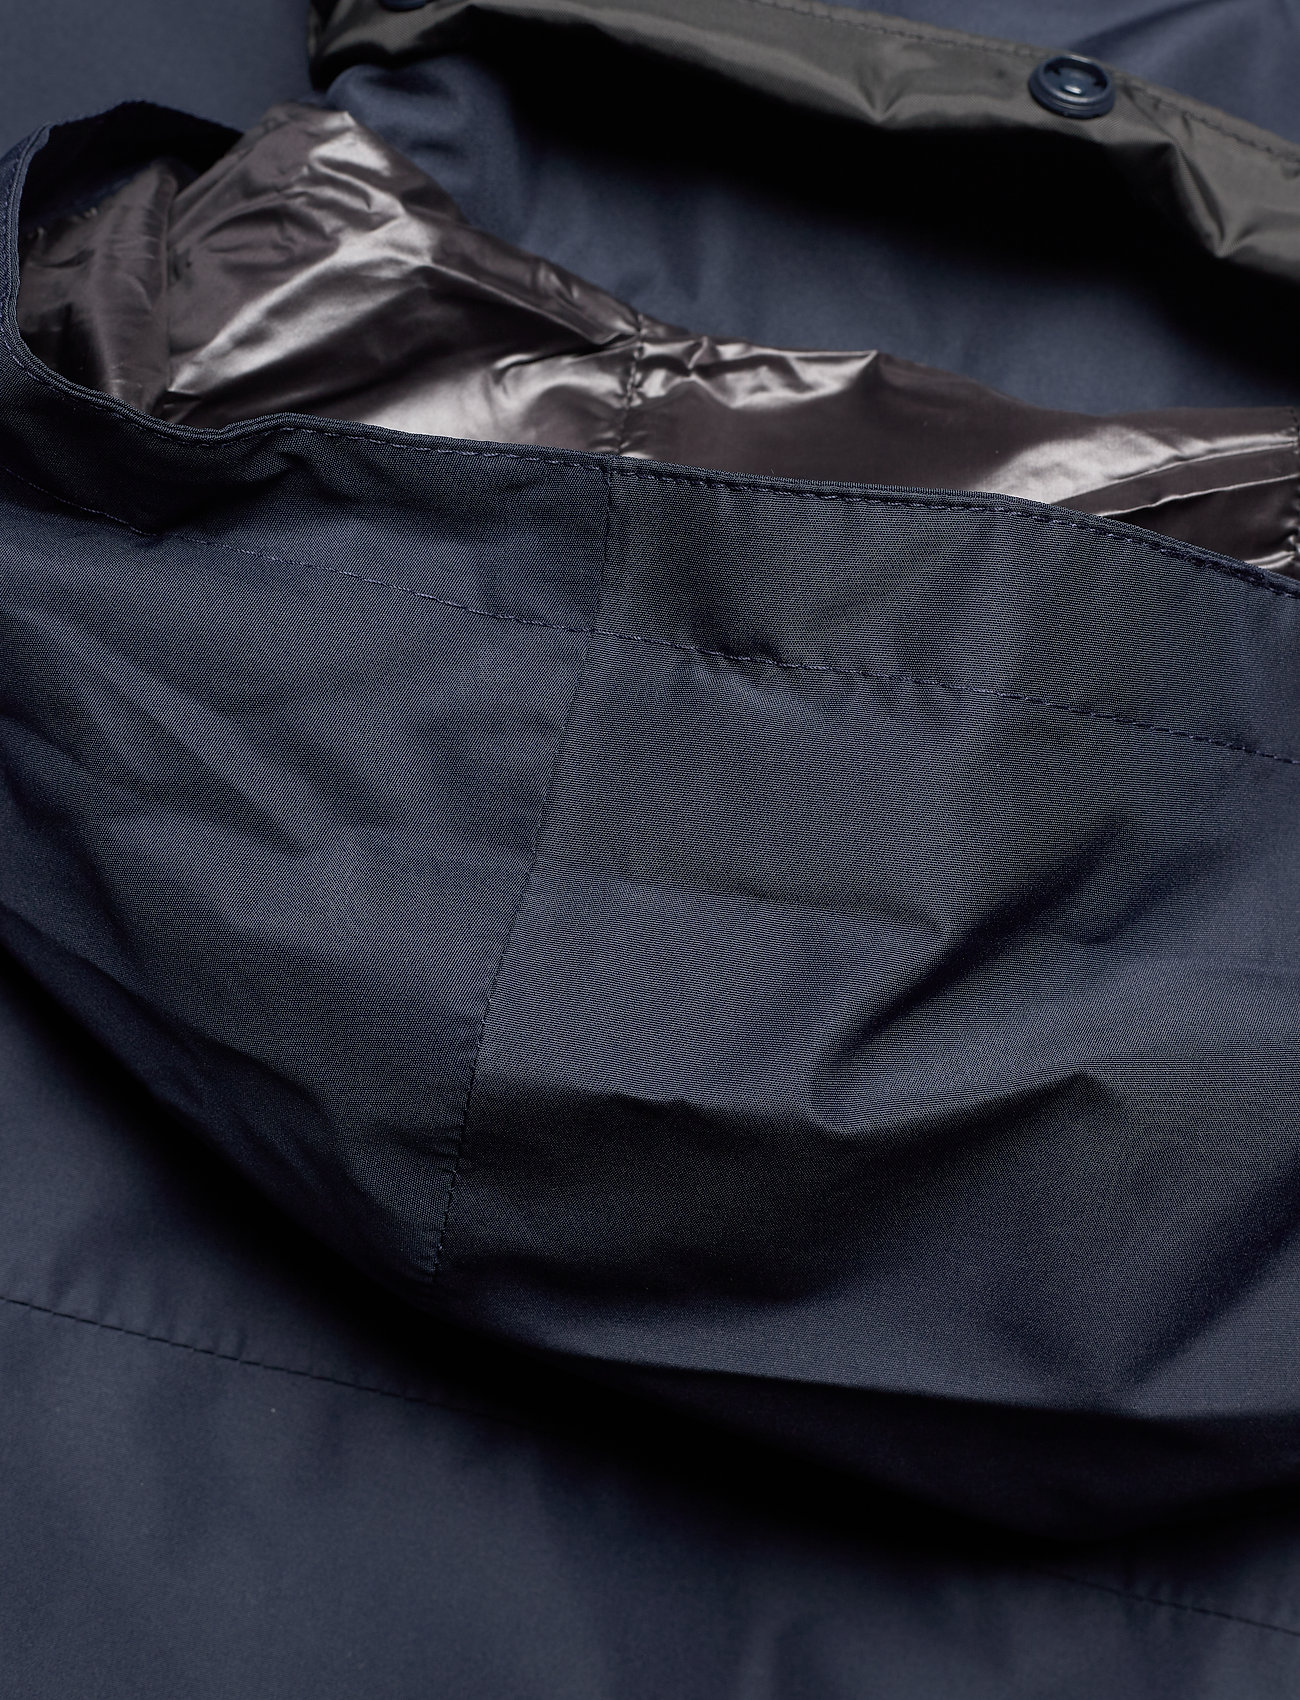 Helly Hansen DUBLINER INSULATED LONG JACKET - Jakker og frakker NAVY - Menn Klær